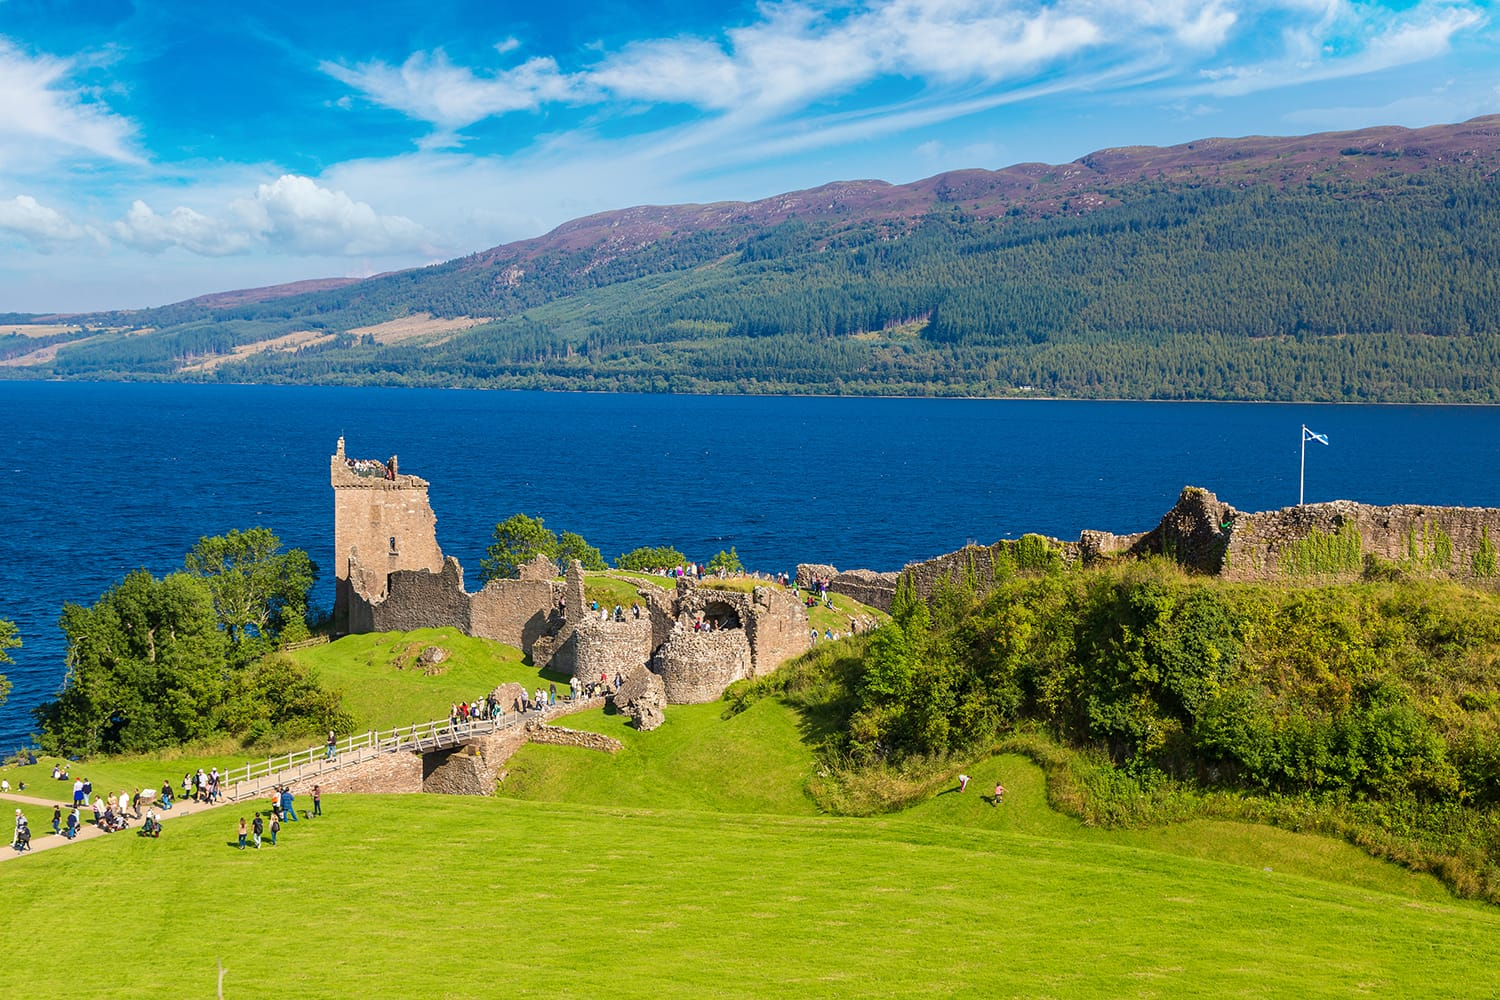 Urquhart castle at Loch Ness in Scotland, UK